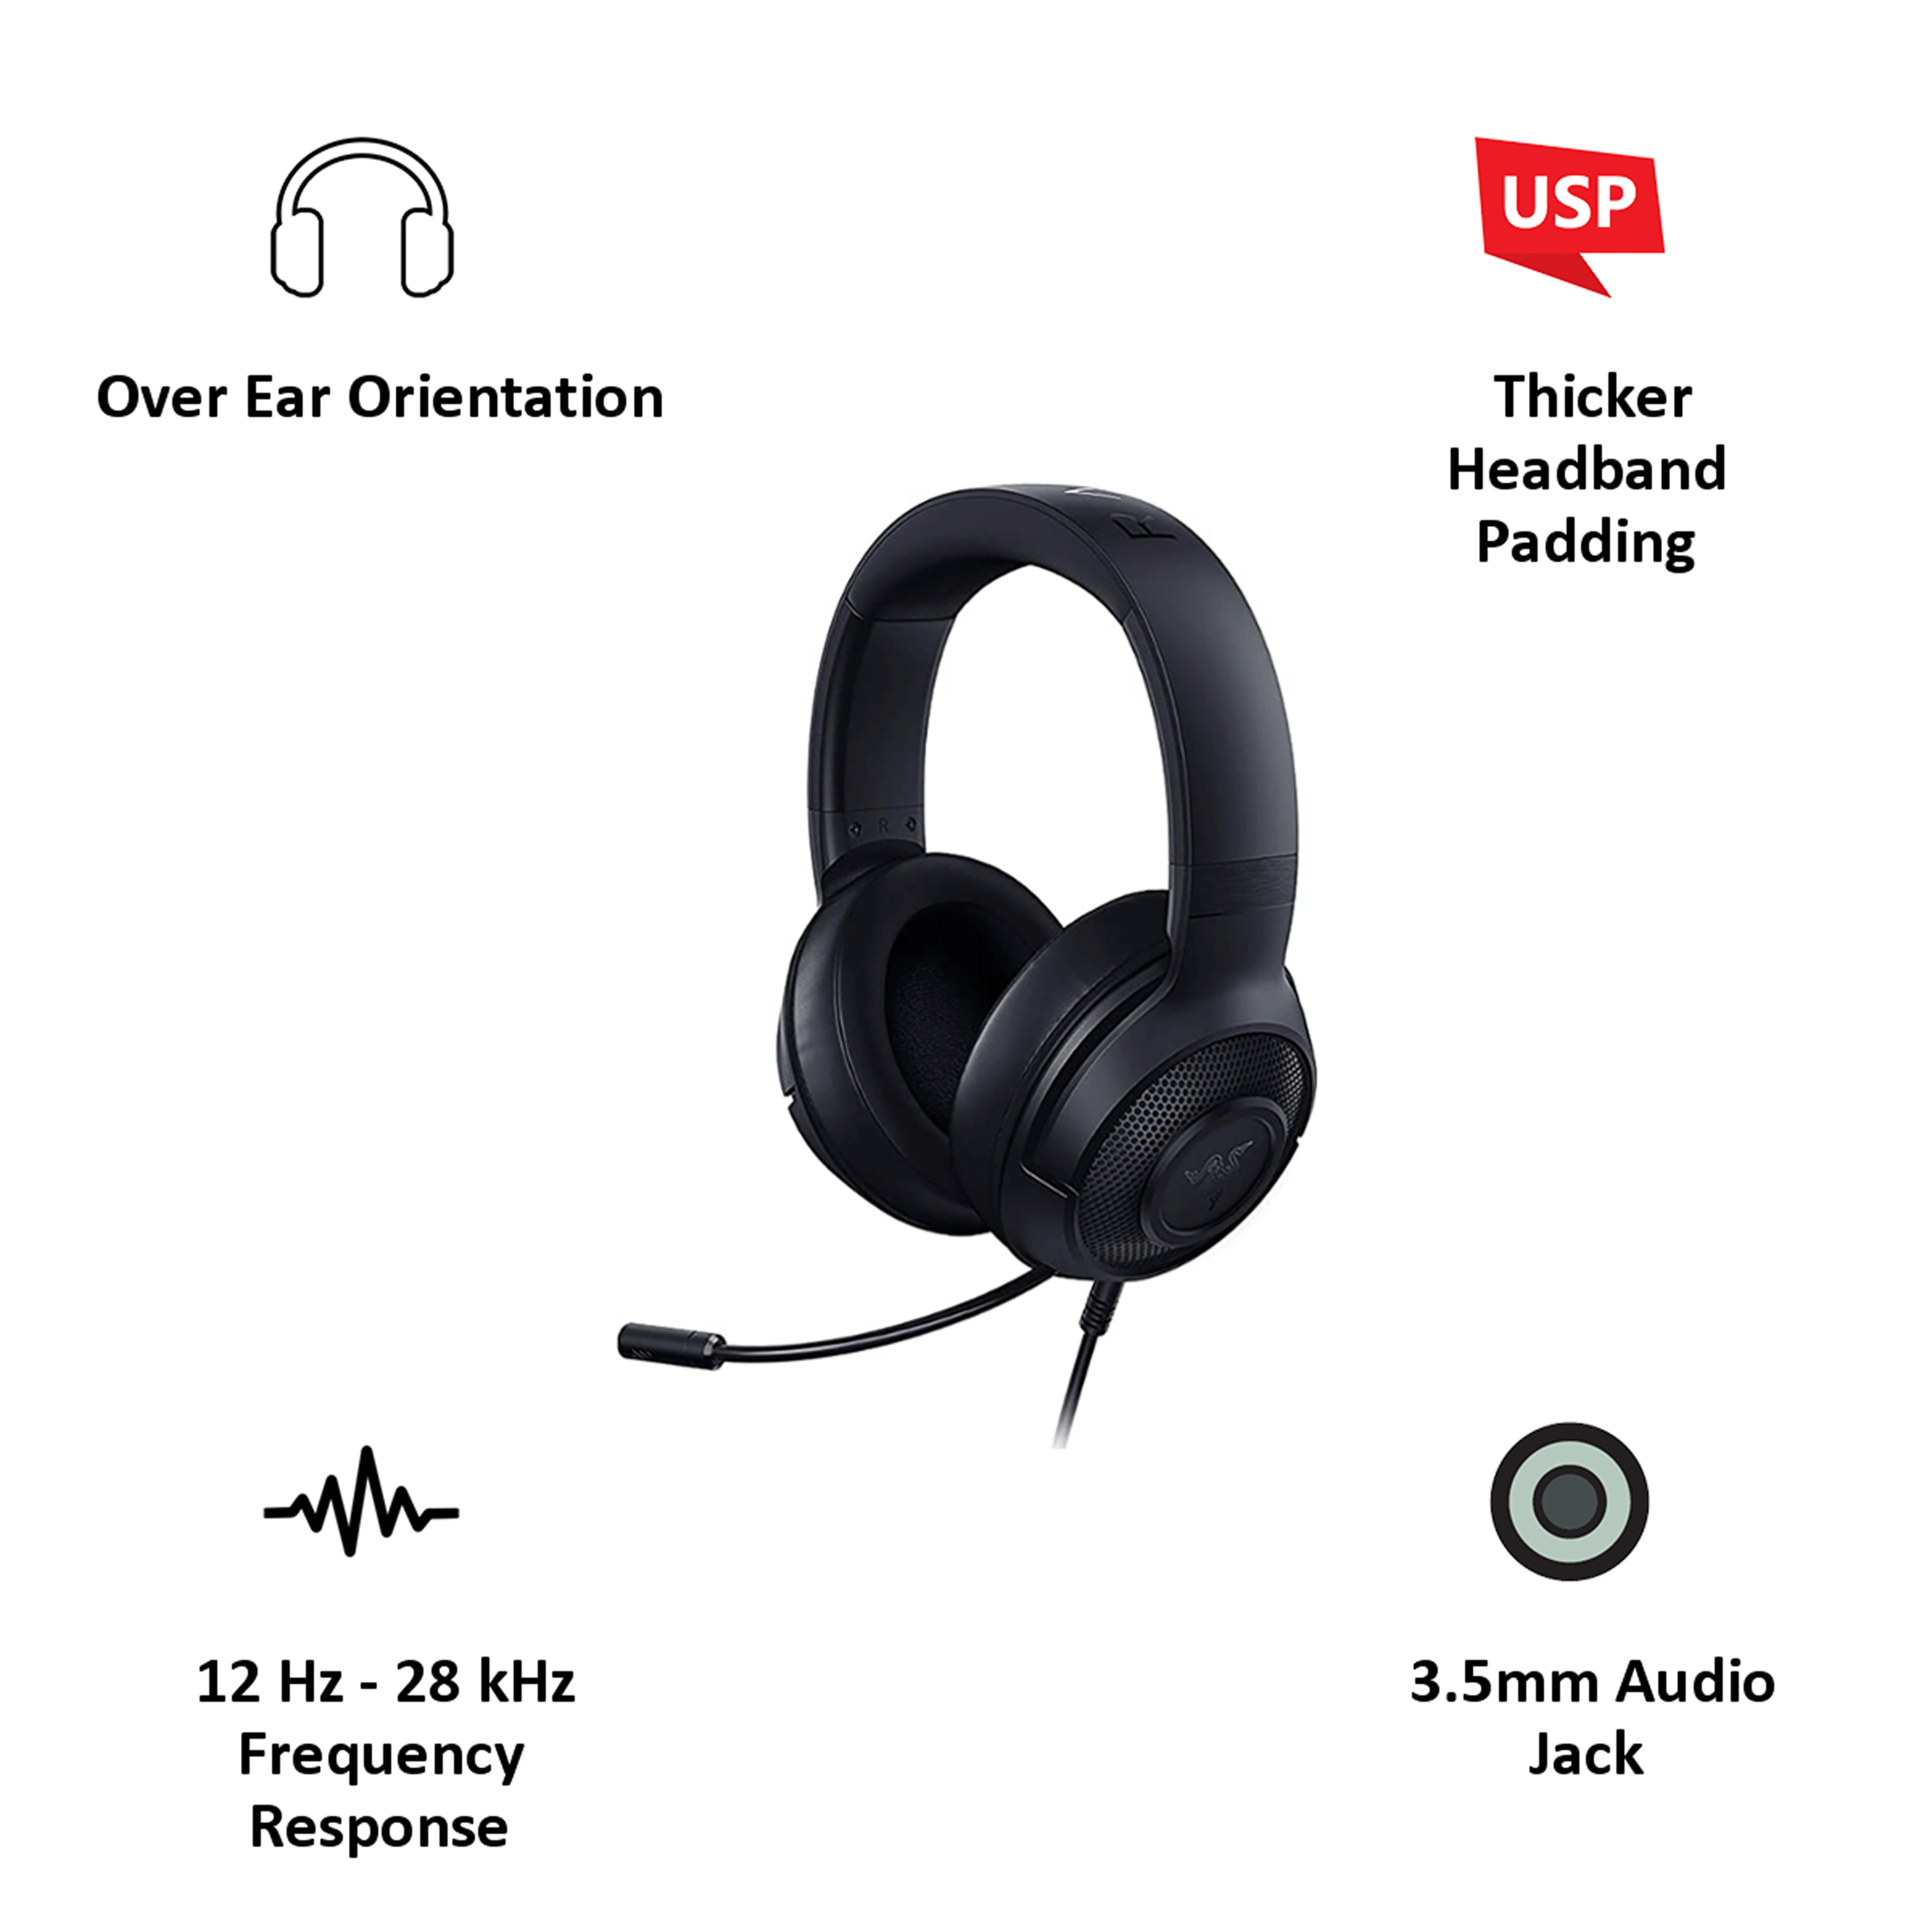 Razer Kraken Over-Ear Wired Gaming Headset with Mic (Clear & Powerful Sound, RZ04-02830100-R3M1, Black)_4